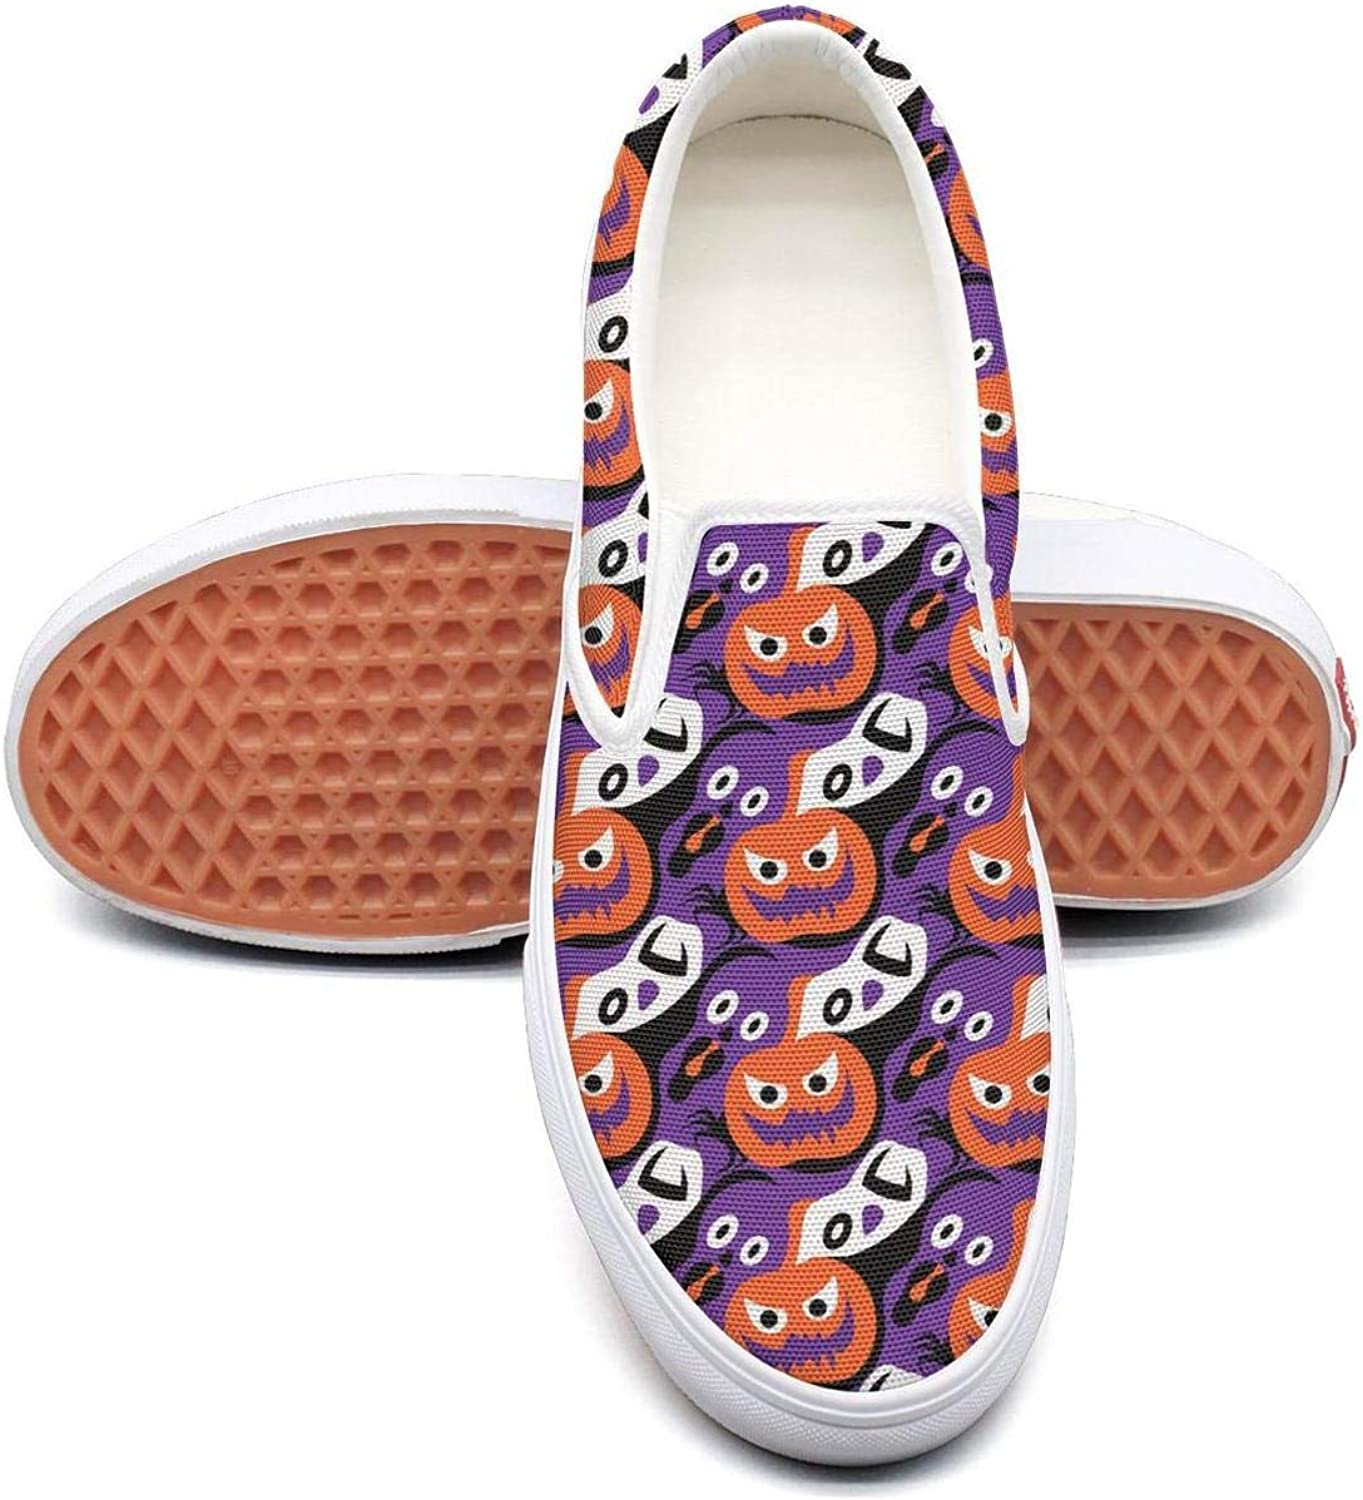 Sernfinjdr Women's Funny Halloween Pumpkin Fashion Casual Canvas Slip on shoes colorful Cycling Sneaker shoes